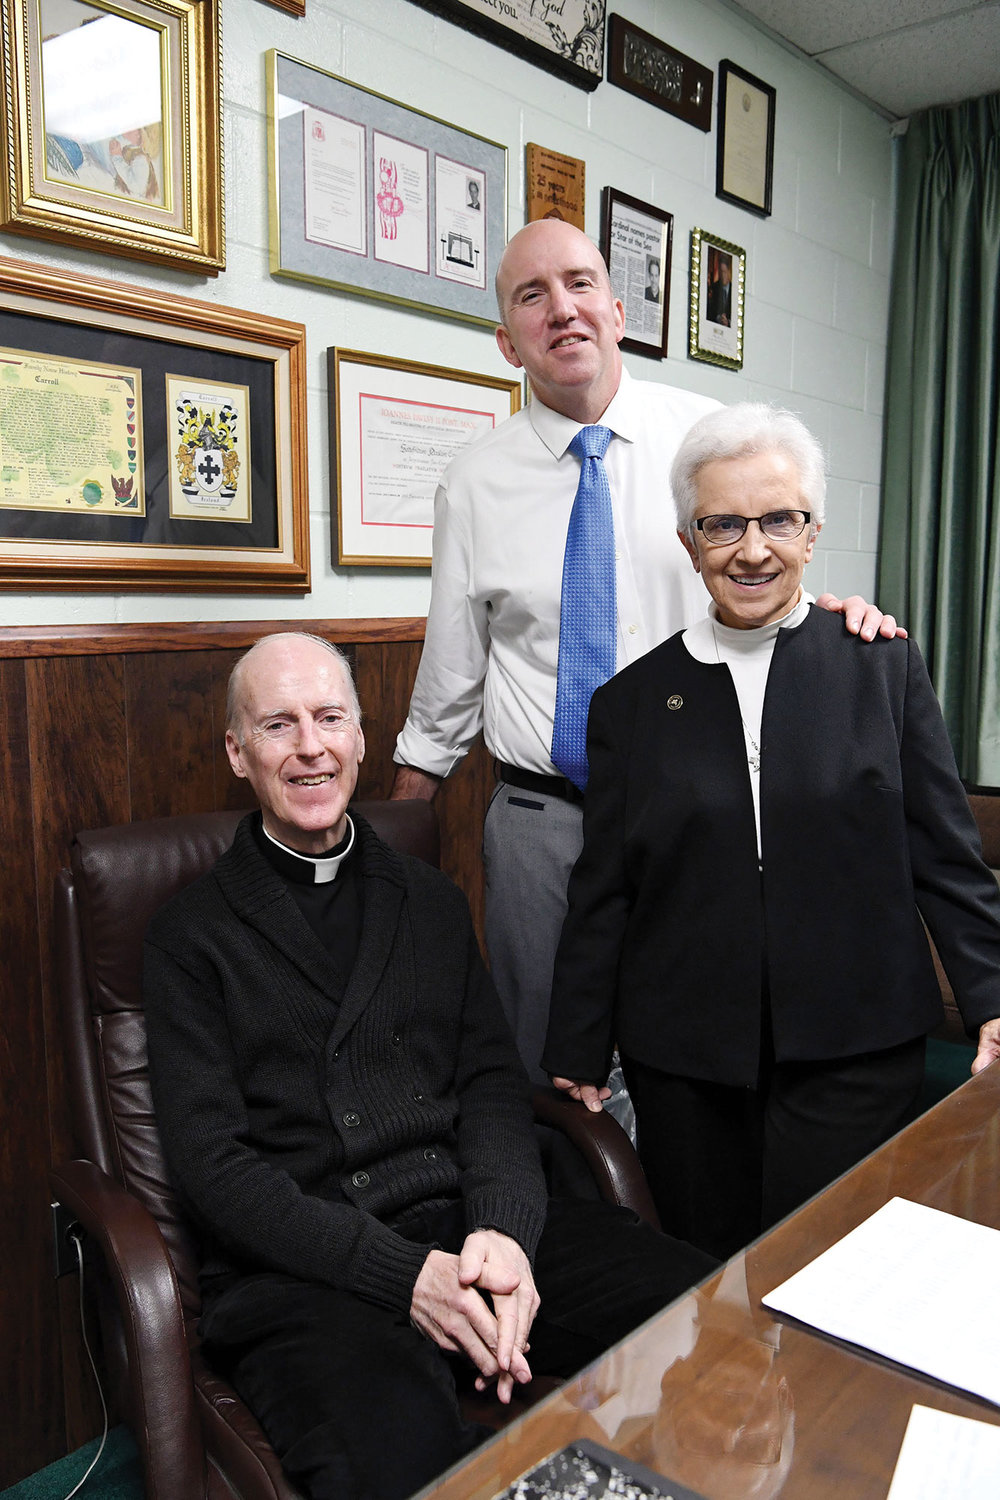 Principal Vincent Sadowski joins Msgr. Jeffrey P. Conway, pastor of St. Patrick's parish, and Sister Mary Ferro, S.S.D., a former longtime principal.